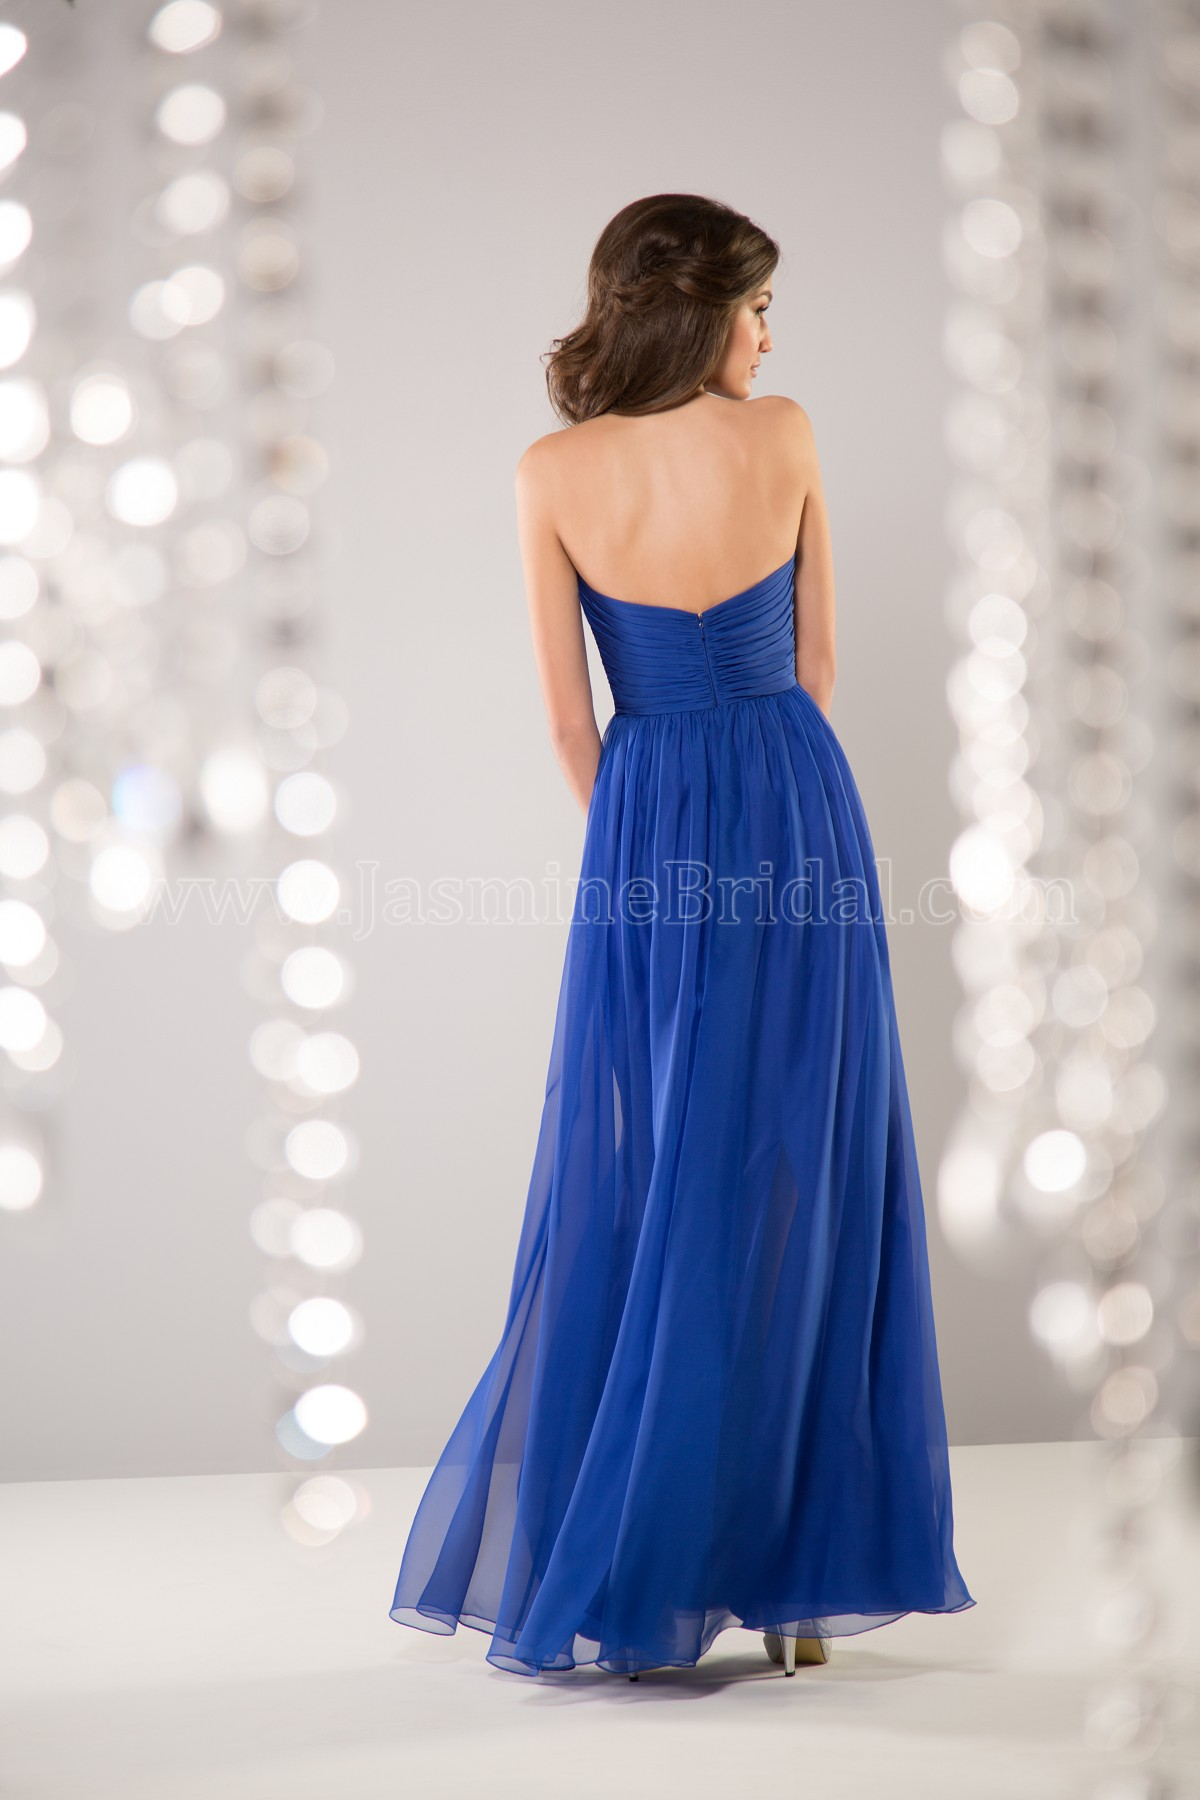 bridesmaid-dresses-B163060X-B